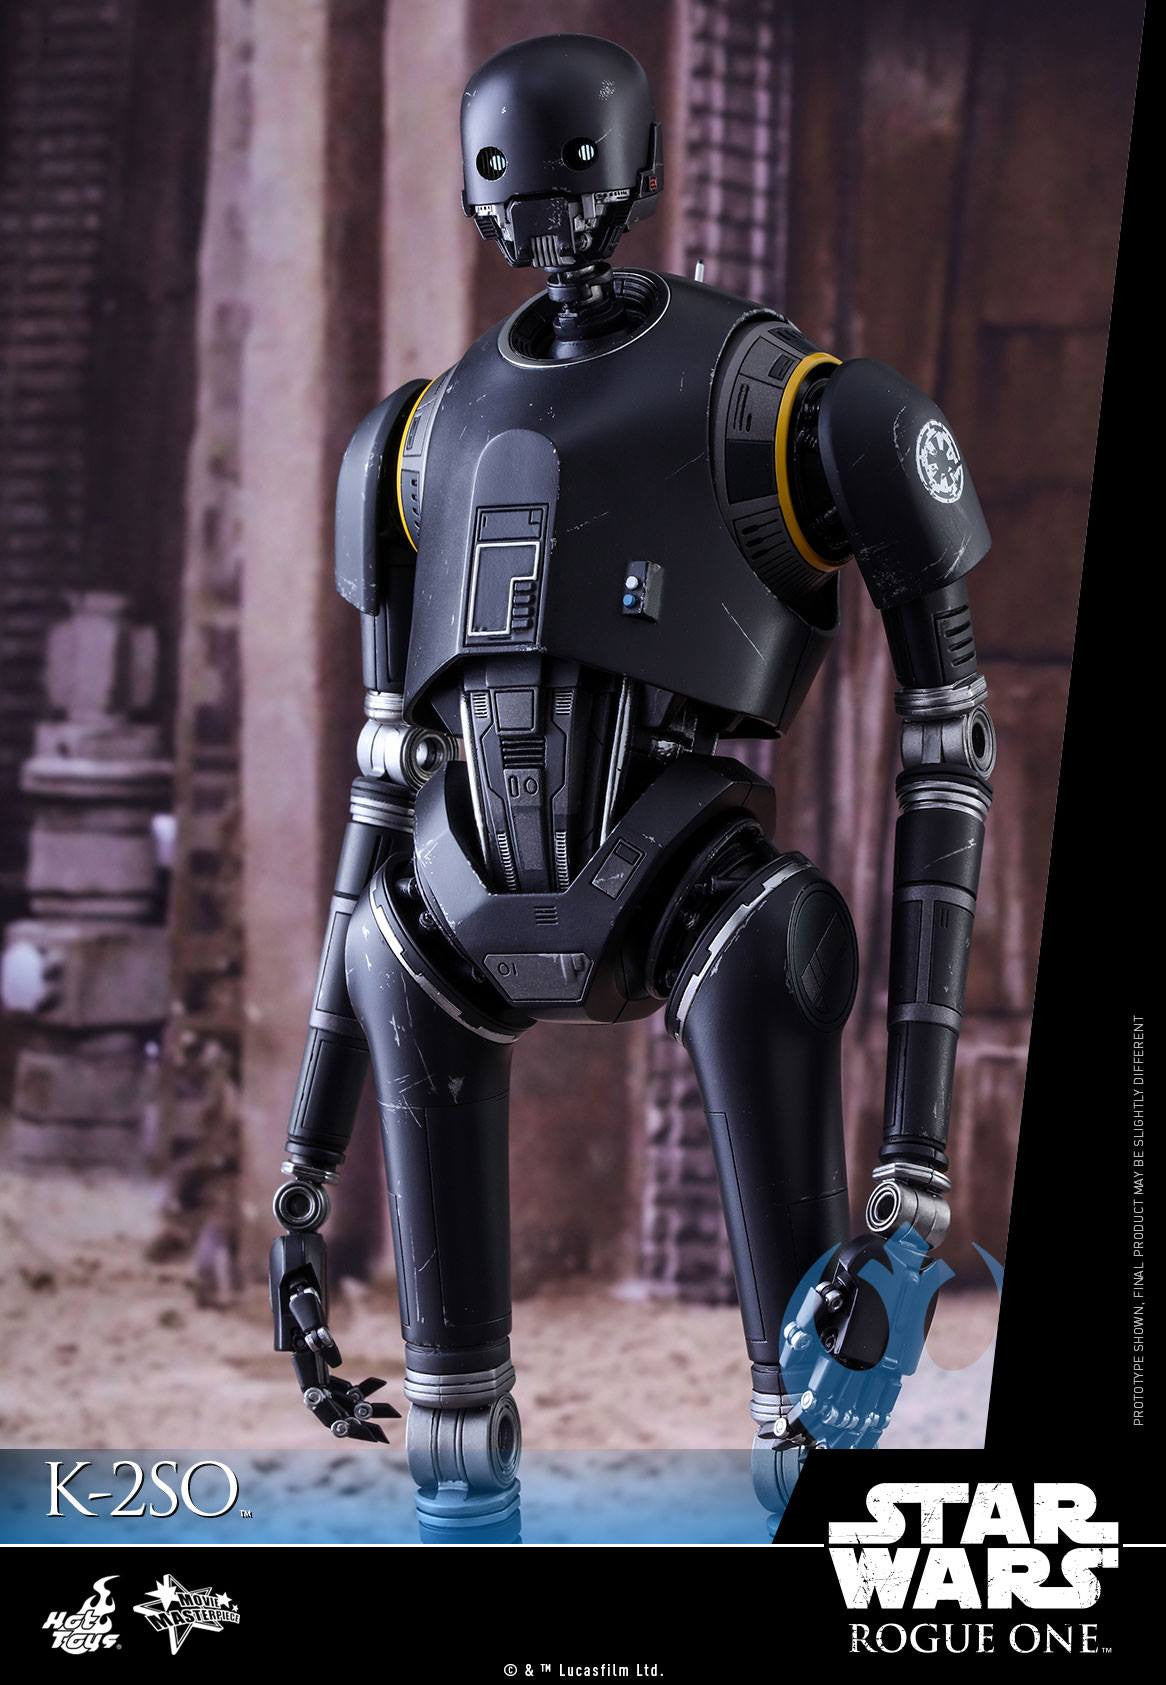 Hot Toys - MMS406 - Rogue One: A Star Wars Story - K-2SO - Marvelous Toys - 7